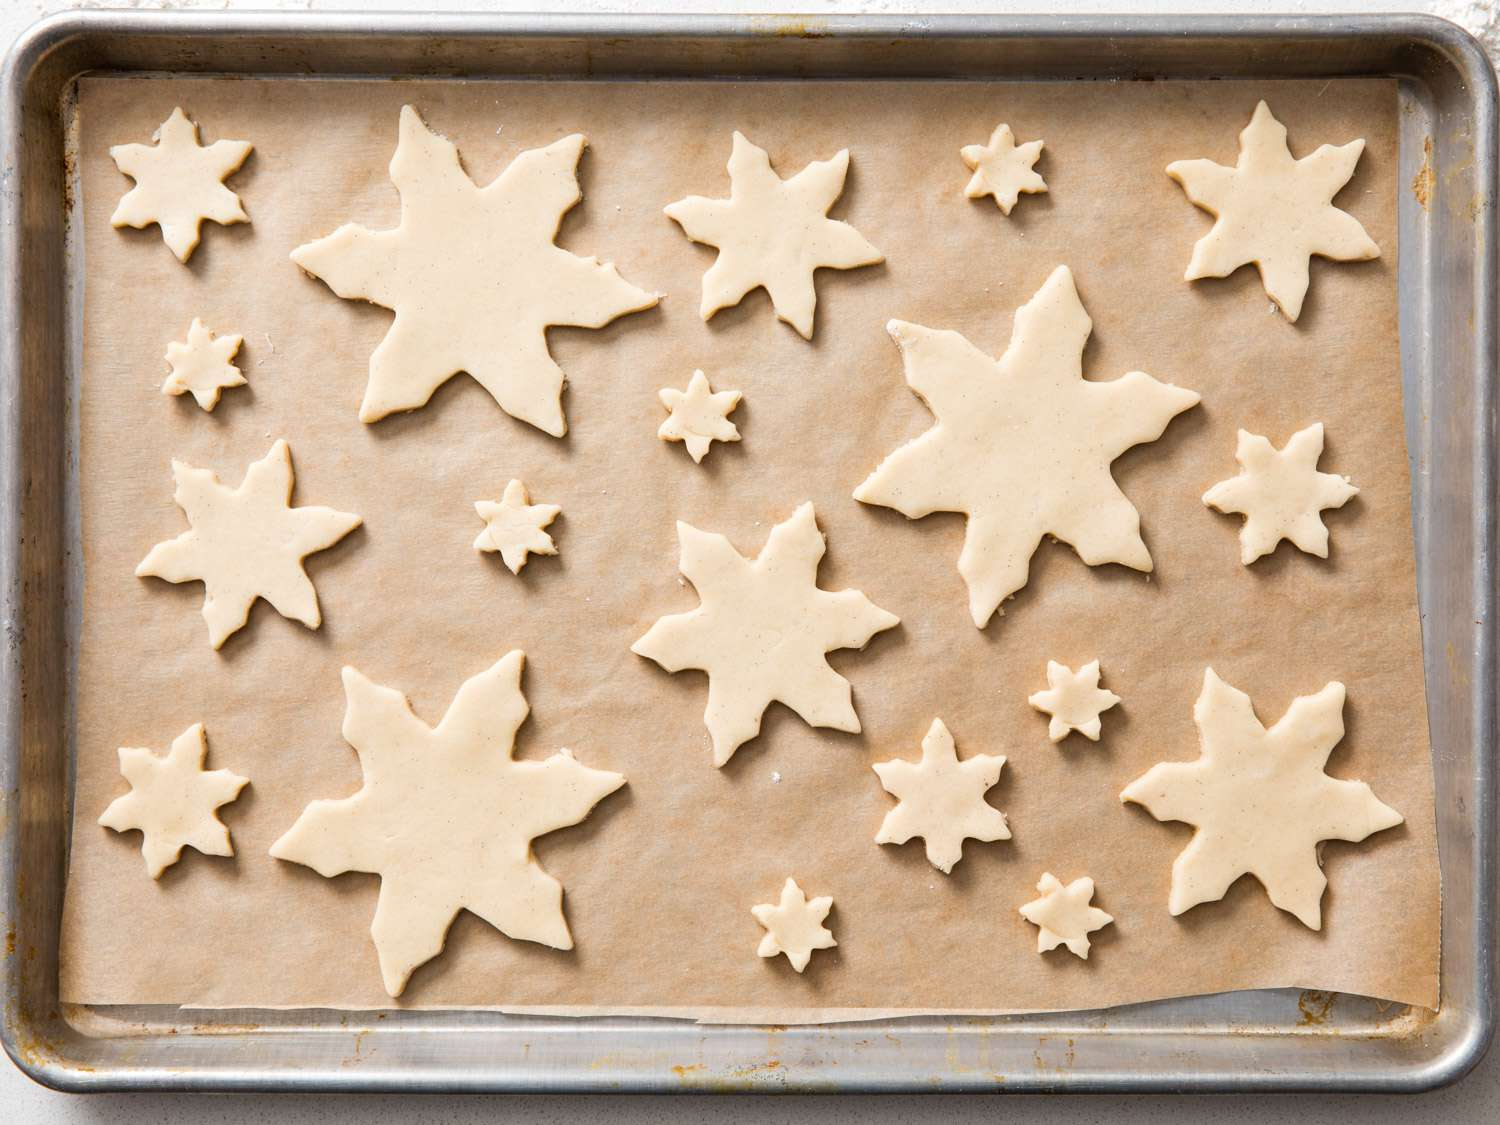 Sugar cookies on a piece of parchment in a baking sheet